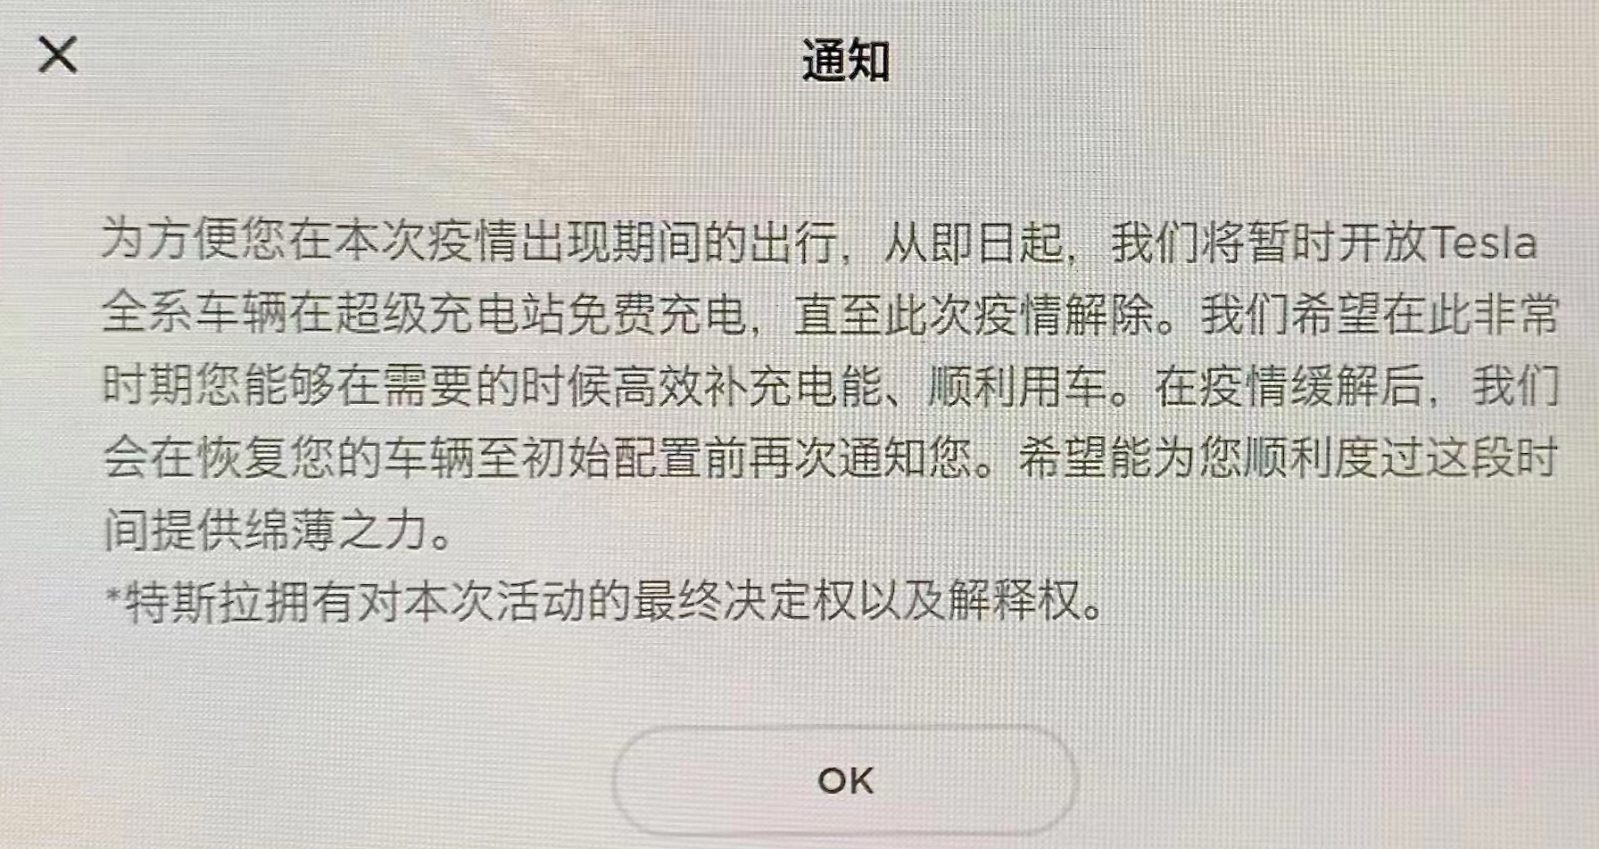 Tesla gives Chinese owners free Supercharging during coronavirus outbreak